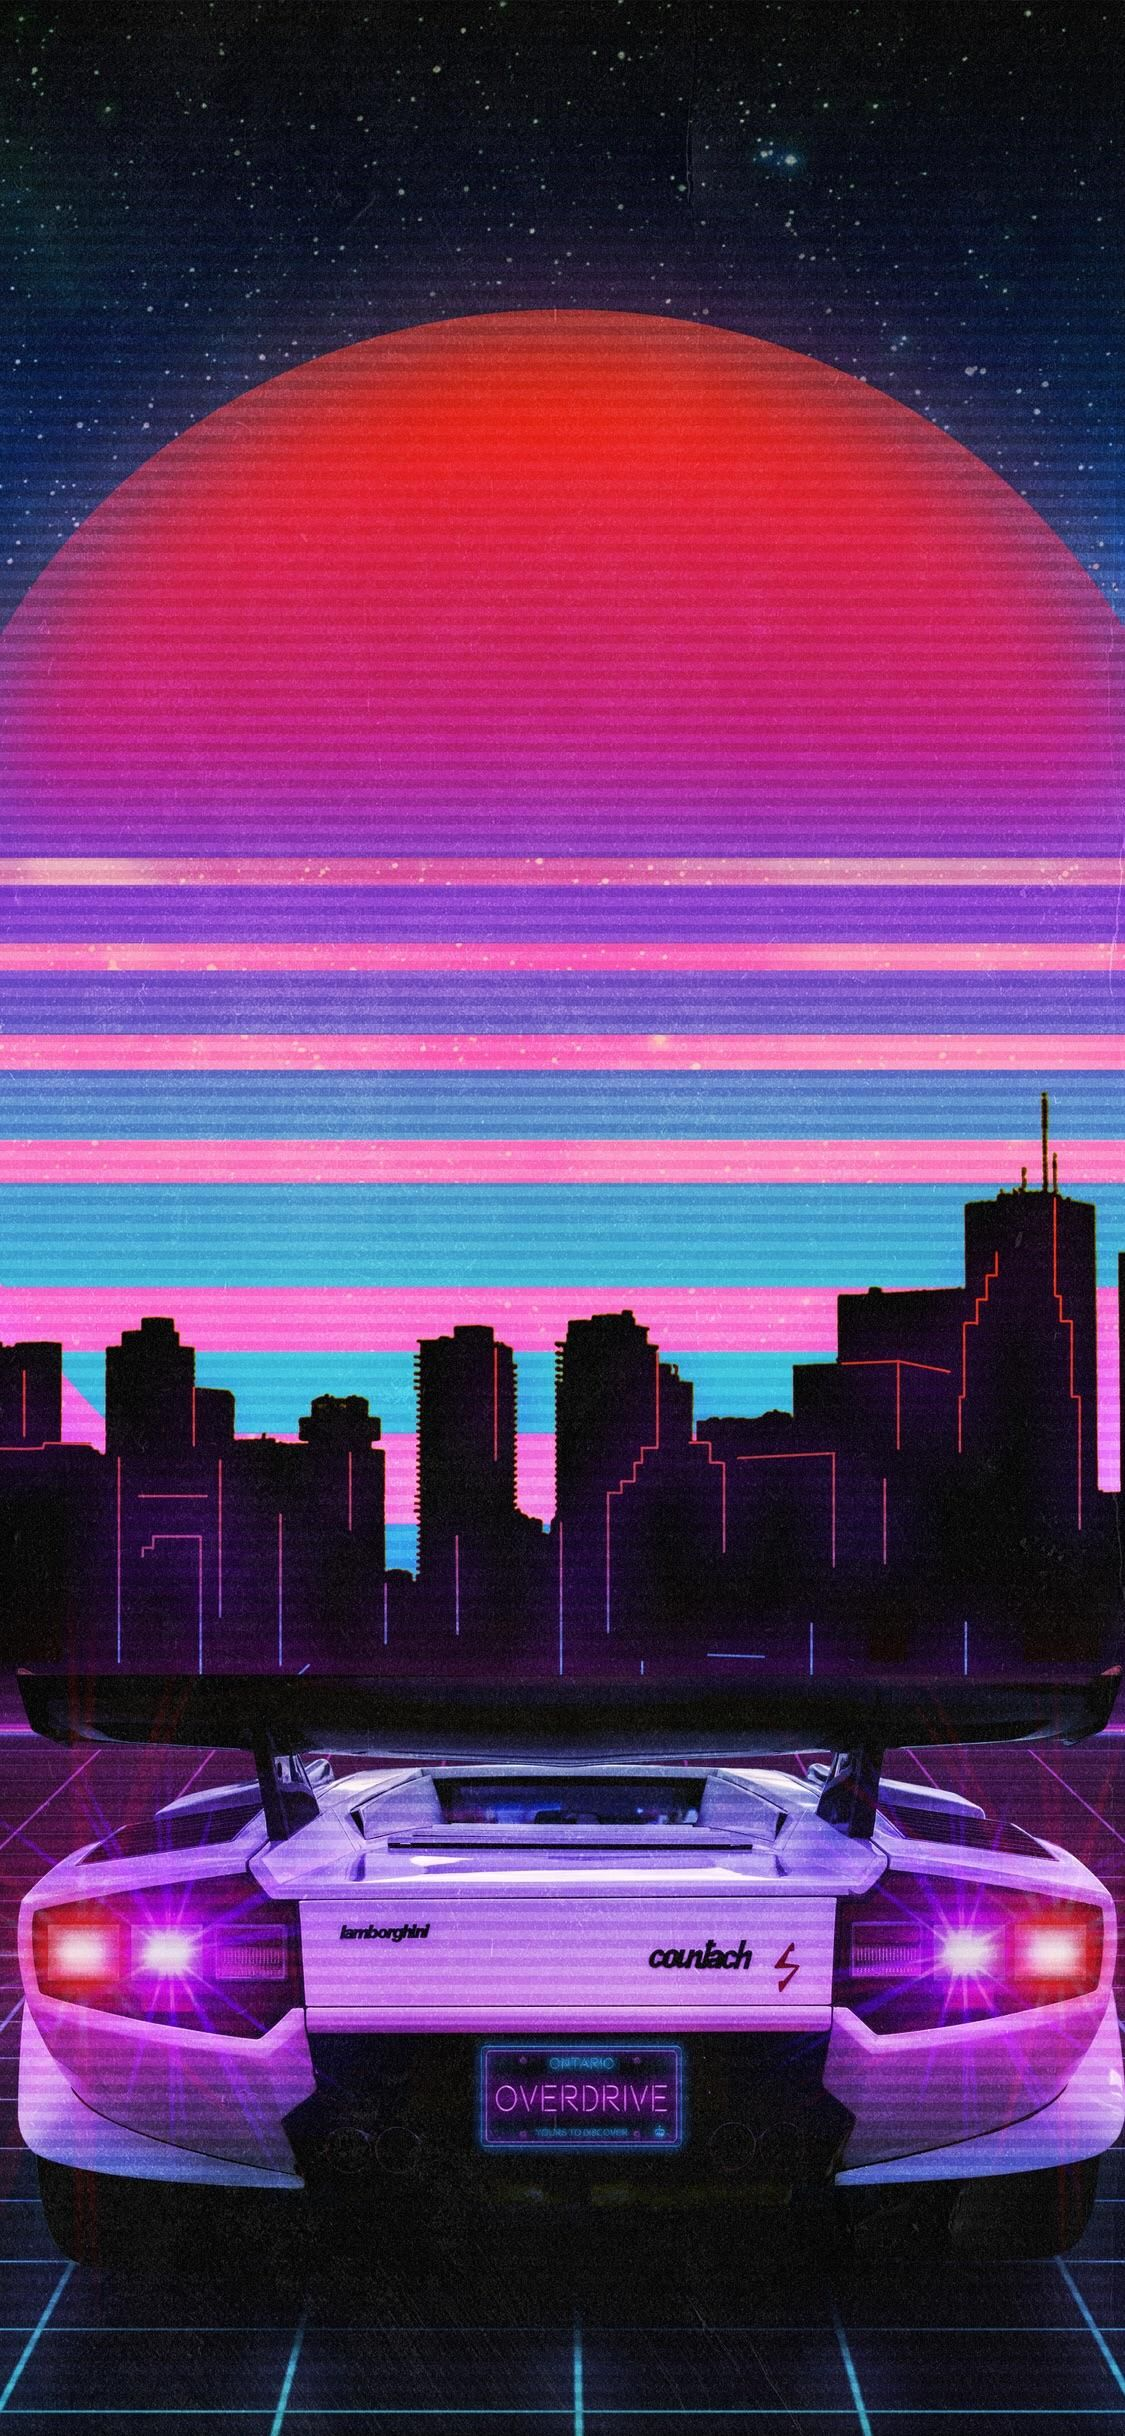 Aesthetic Vaporwave Wallpaper